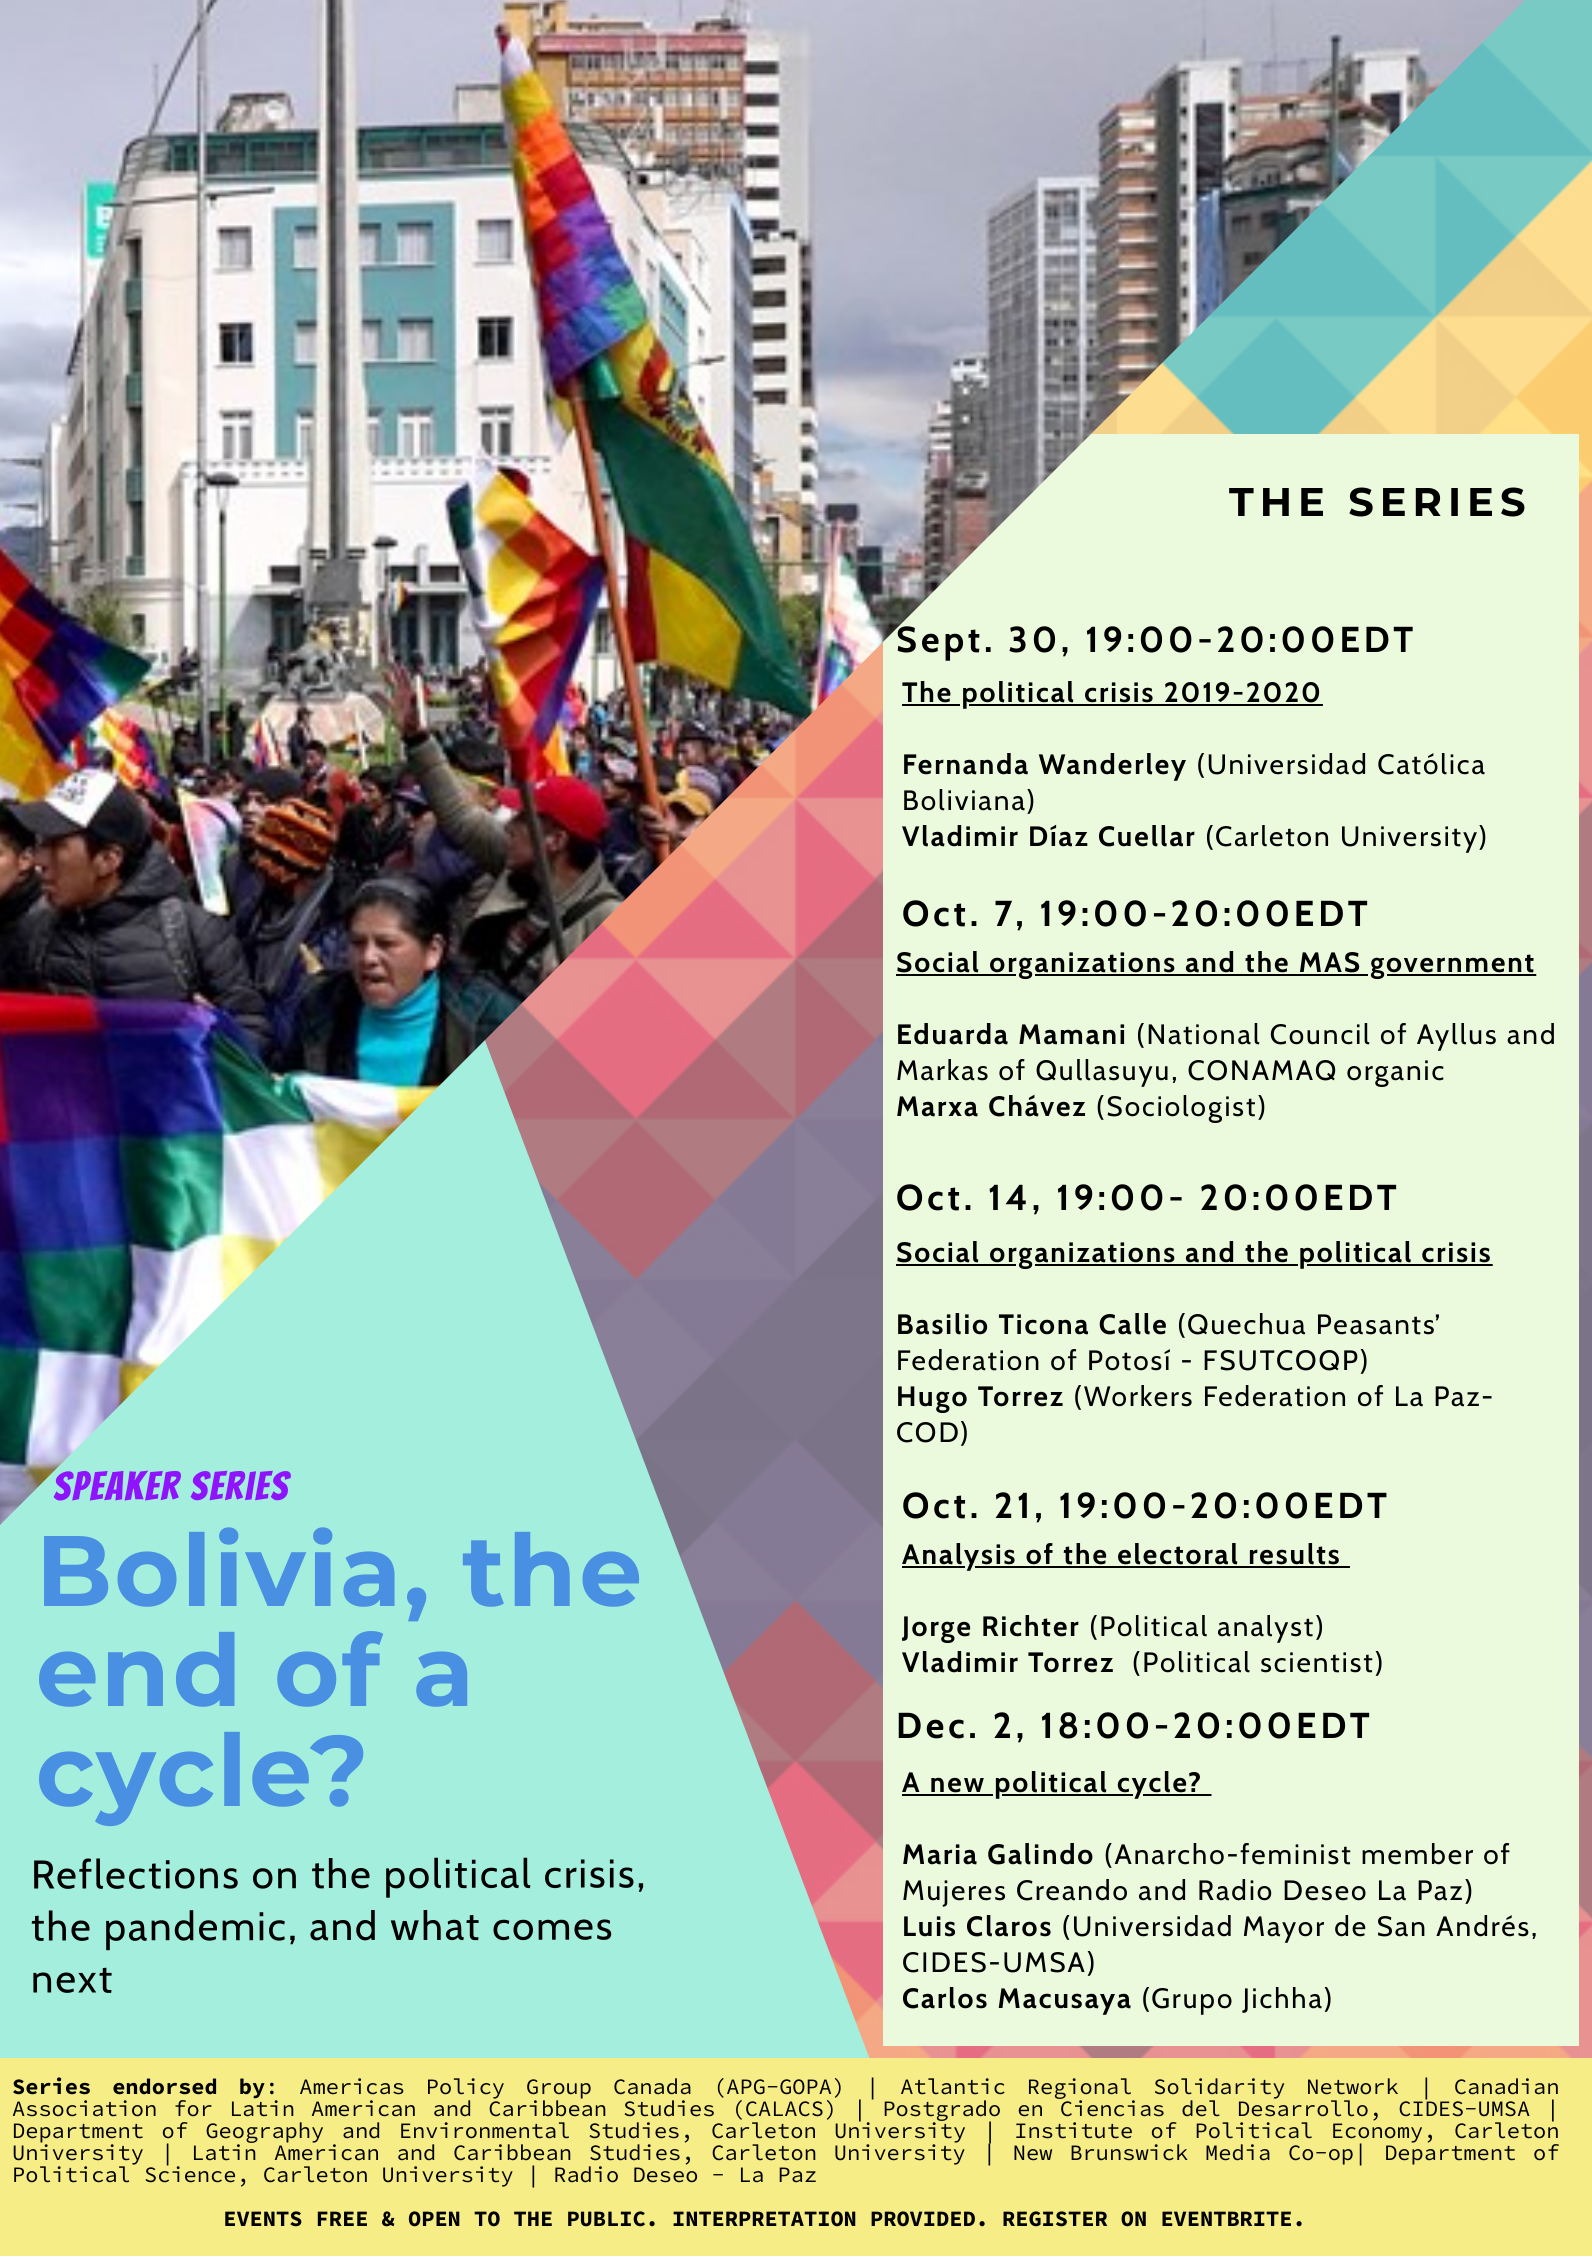 Poster for series with bright colours and an image of people marching through the streets bearing flags on the left side; with a list of the individual events, dates and guest speakers listed on the right. Small print at the bottom lists those endorsing the event. (please see text below).